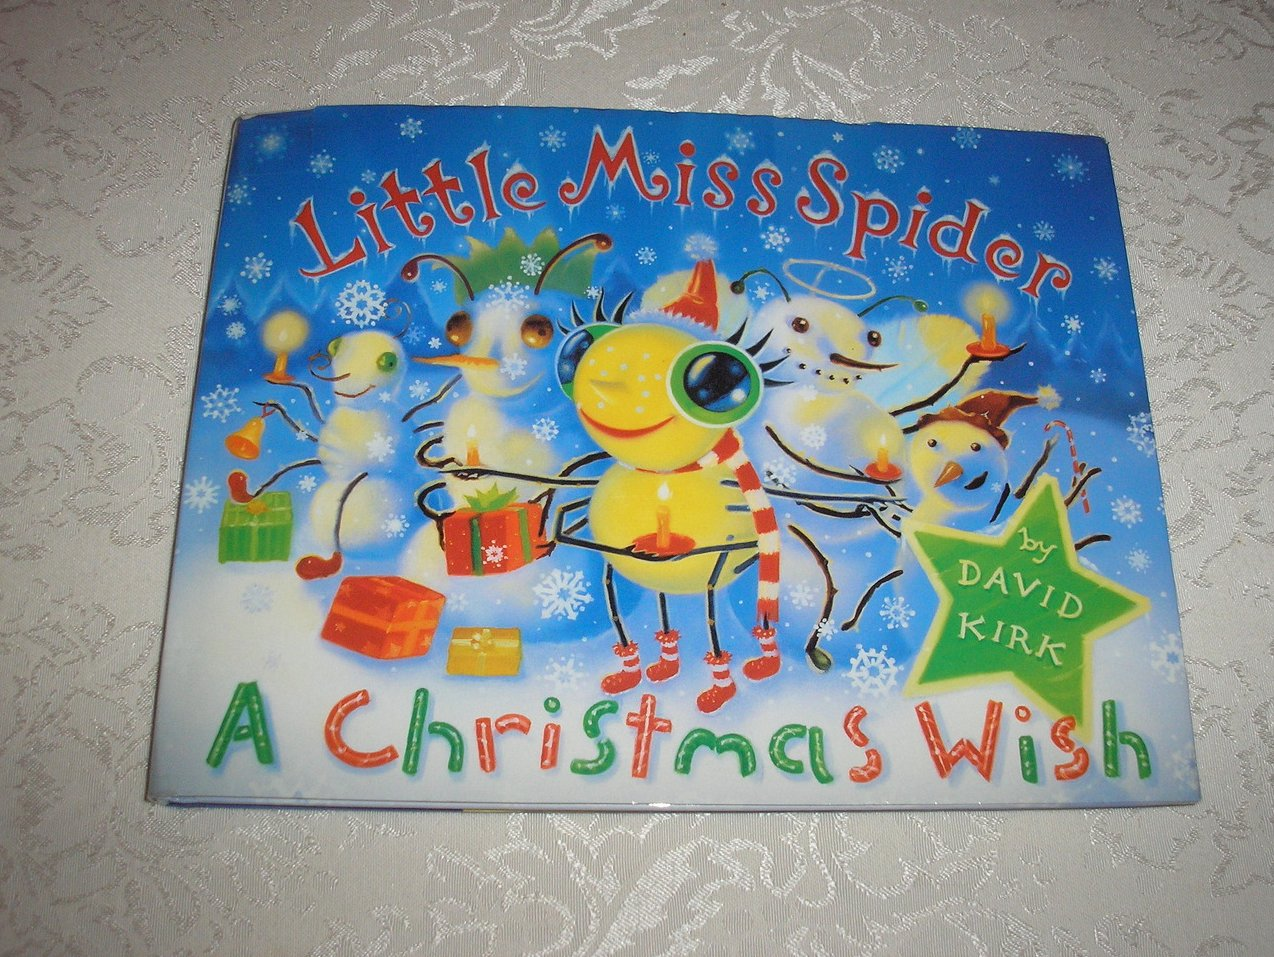 Little Miss Spider A Christmas Wish David Kirk used First Edition hc with dj